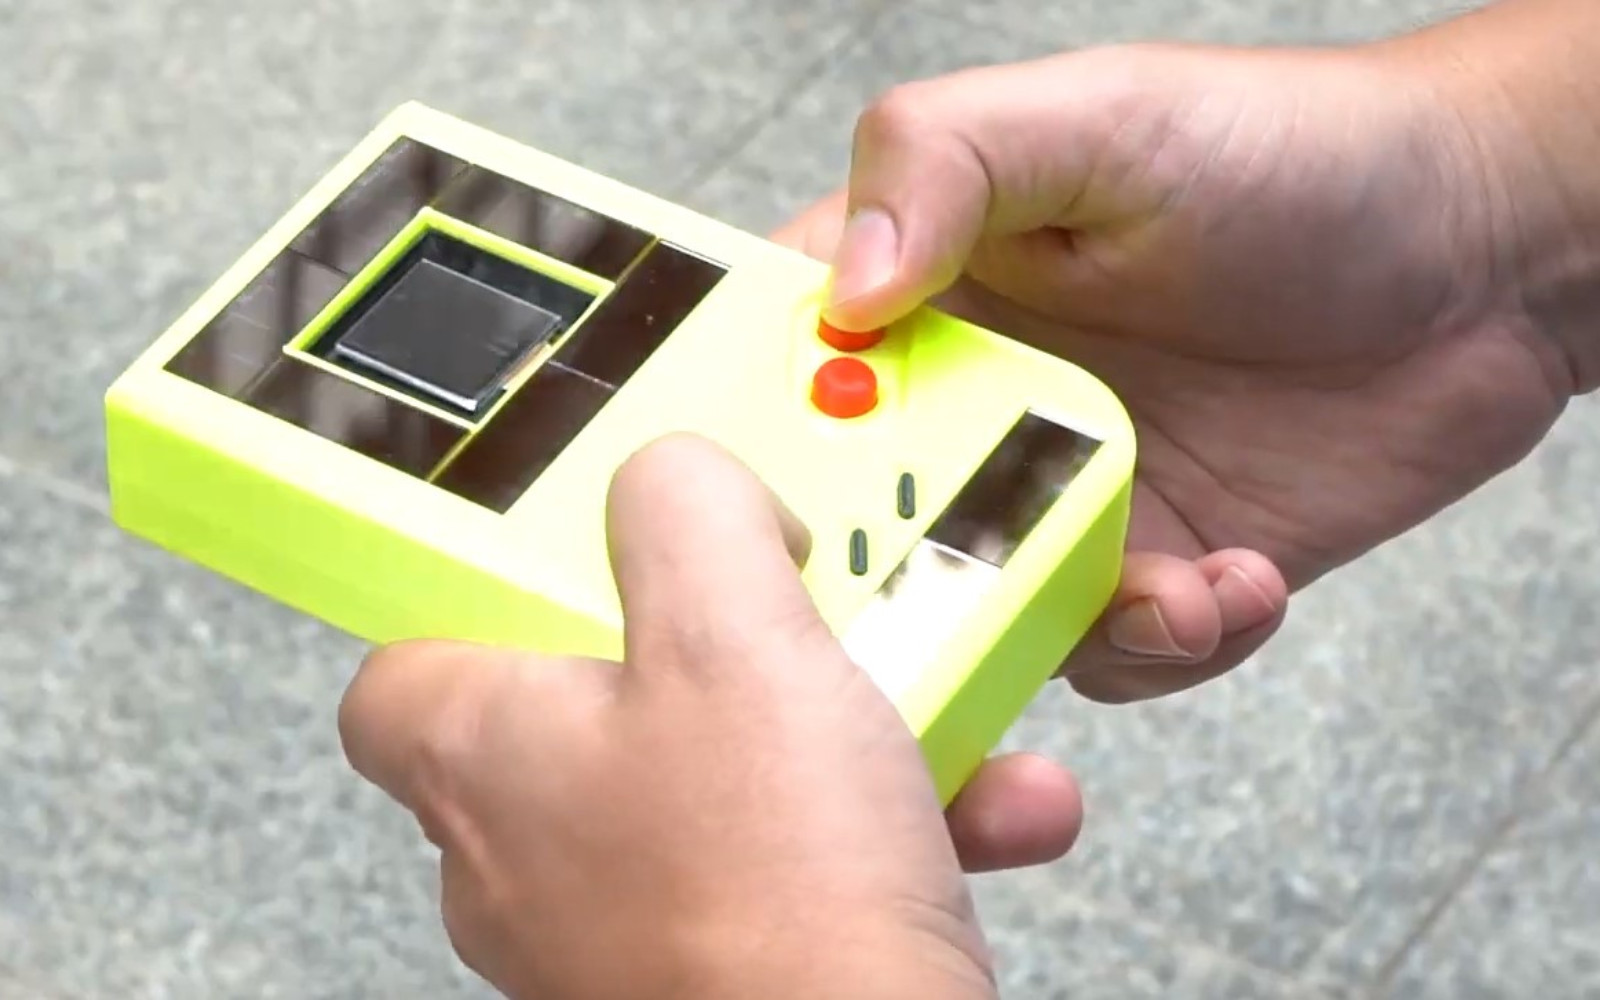 Researchers created a Game Boy that doesn't need batteries | Engadget